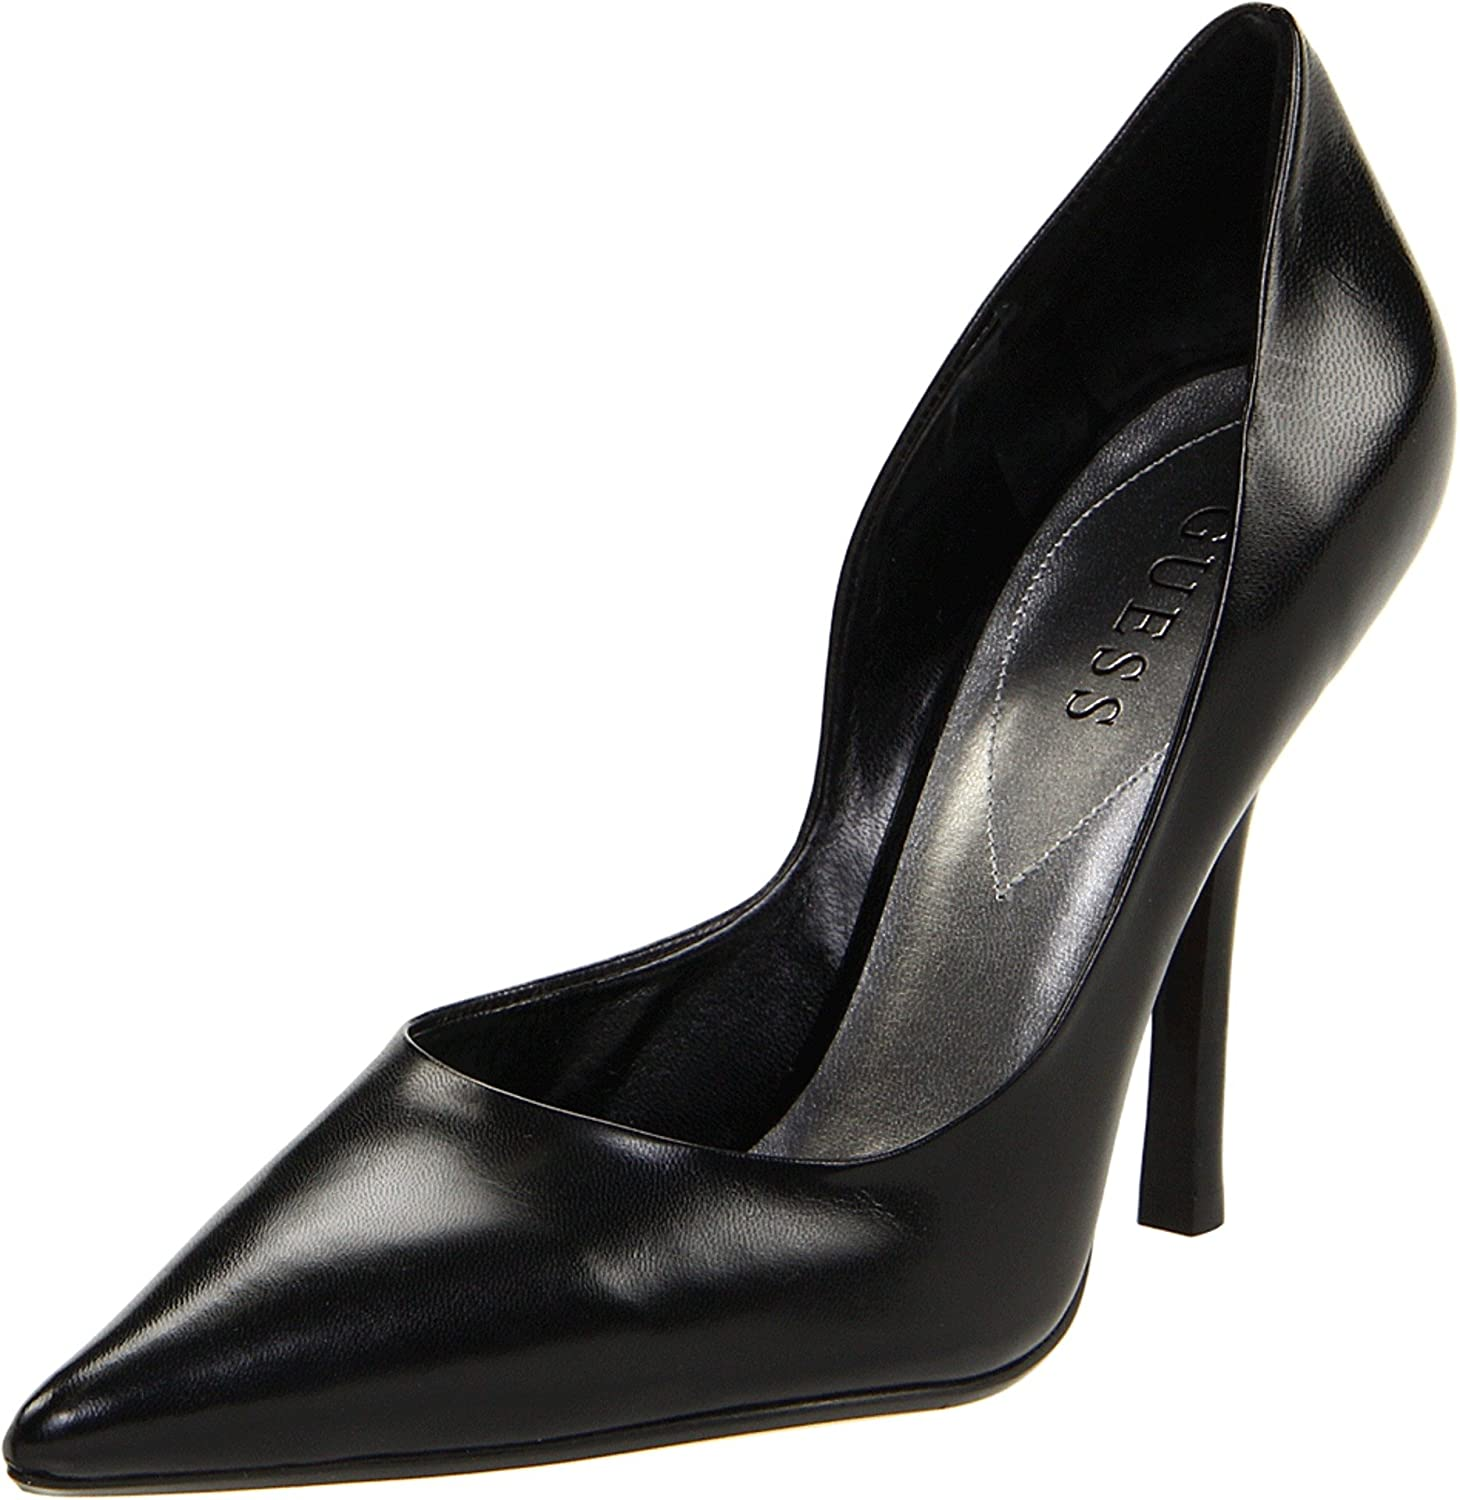 23575f4250d GUESS Women's Carrie Dress Pump